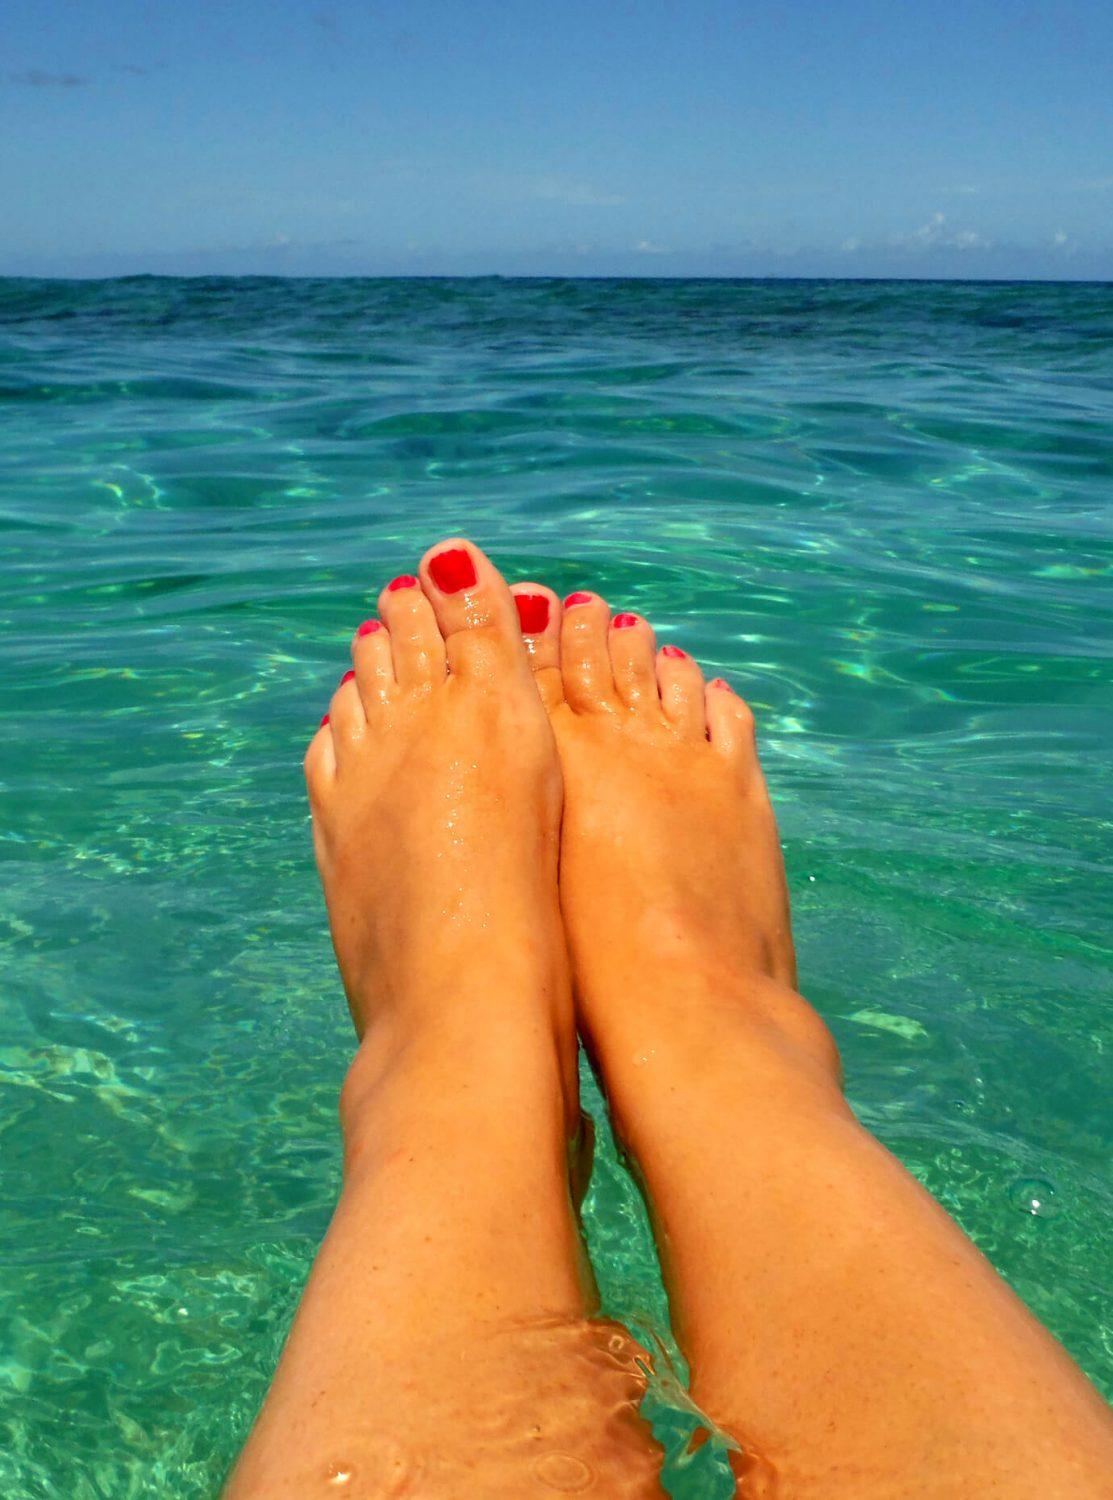 Gill's toes in the sea